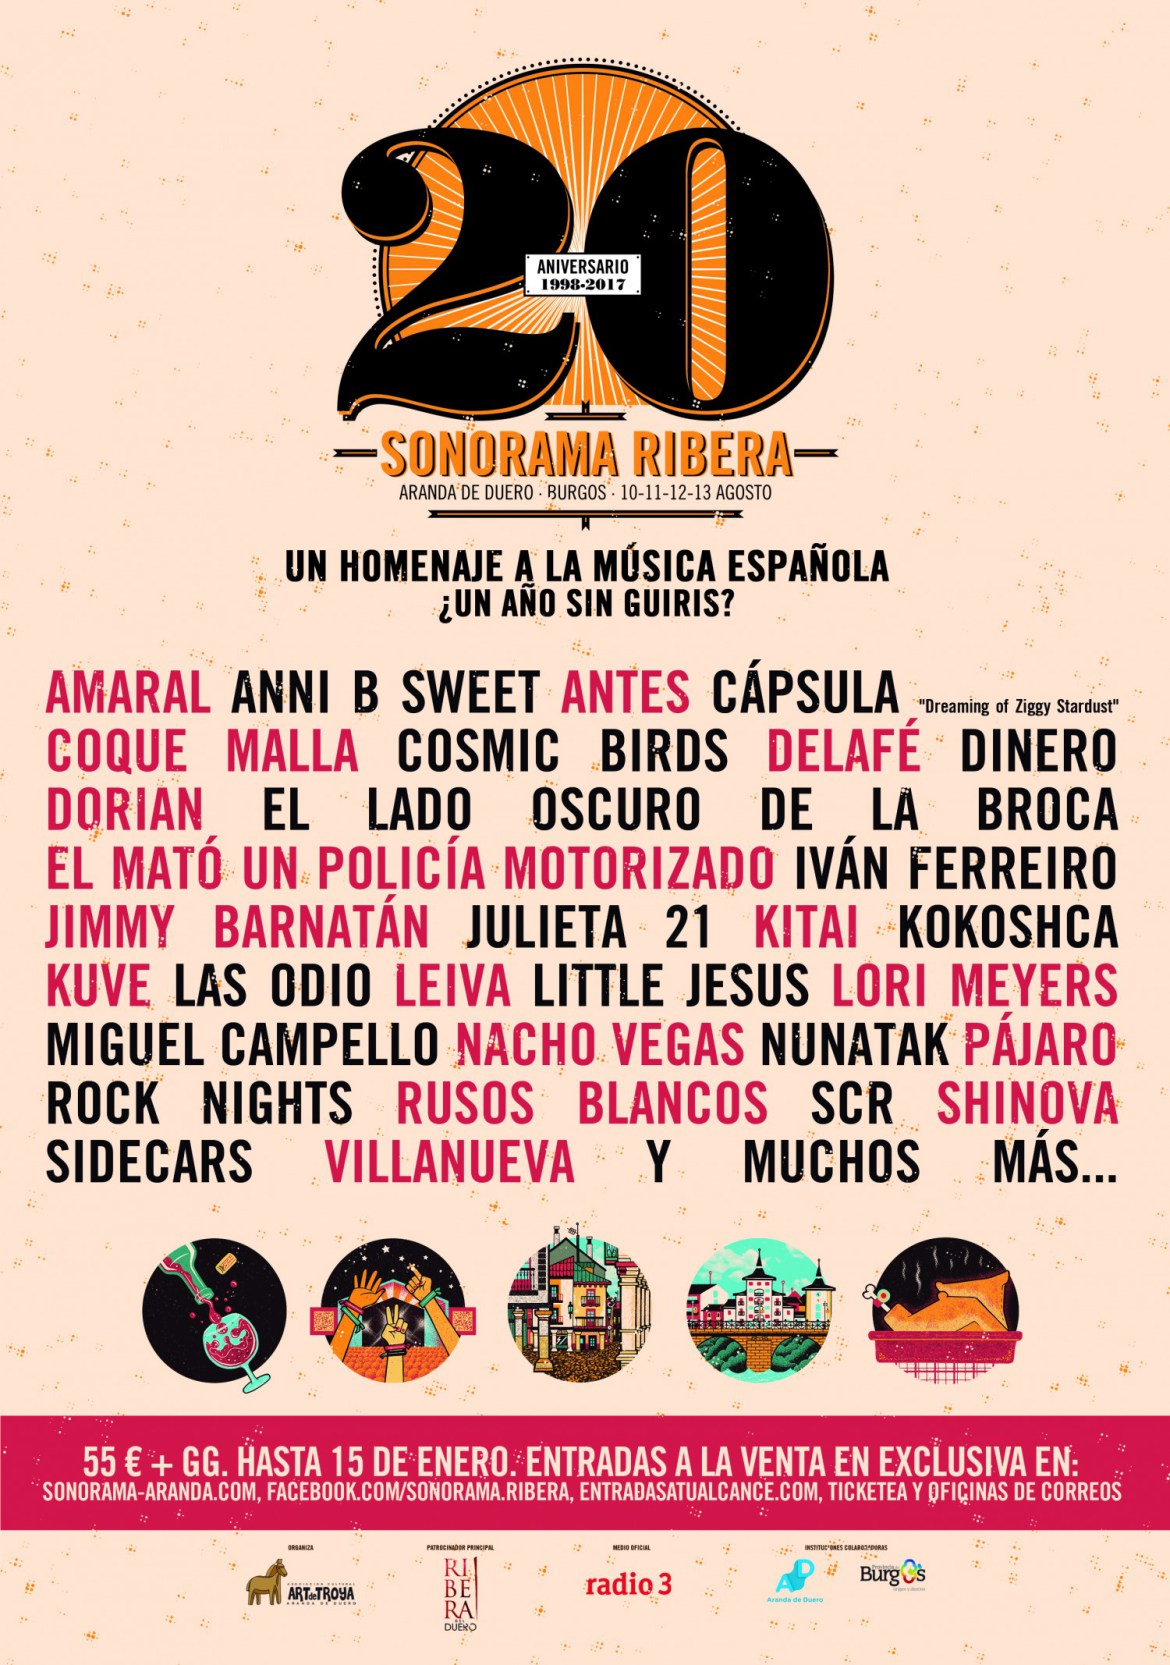 cartel-sonorama-ribera-2017